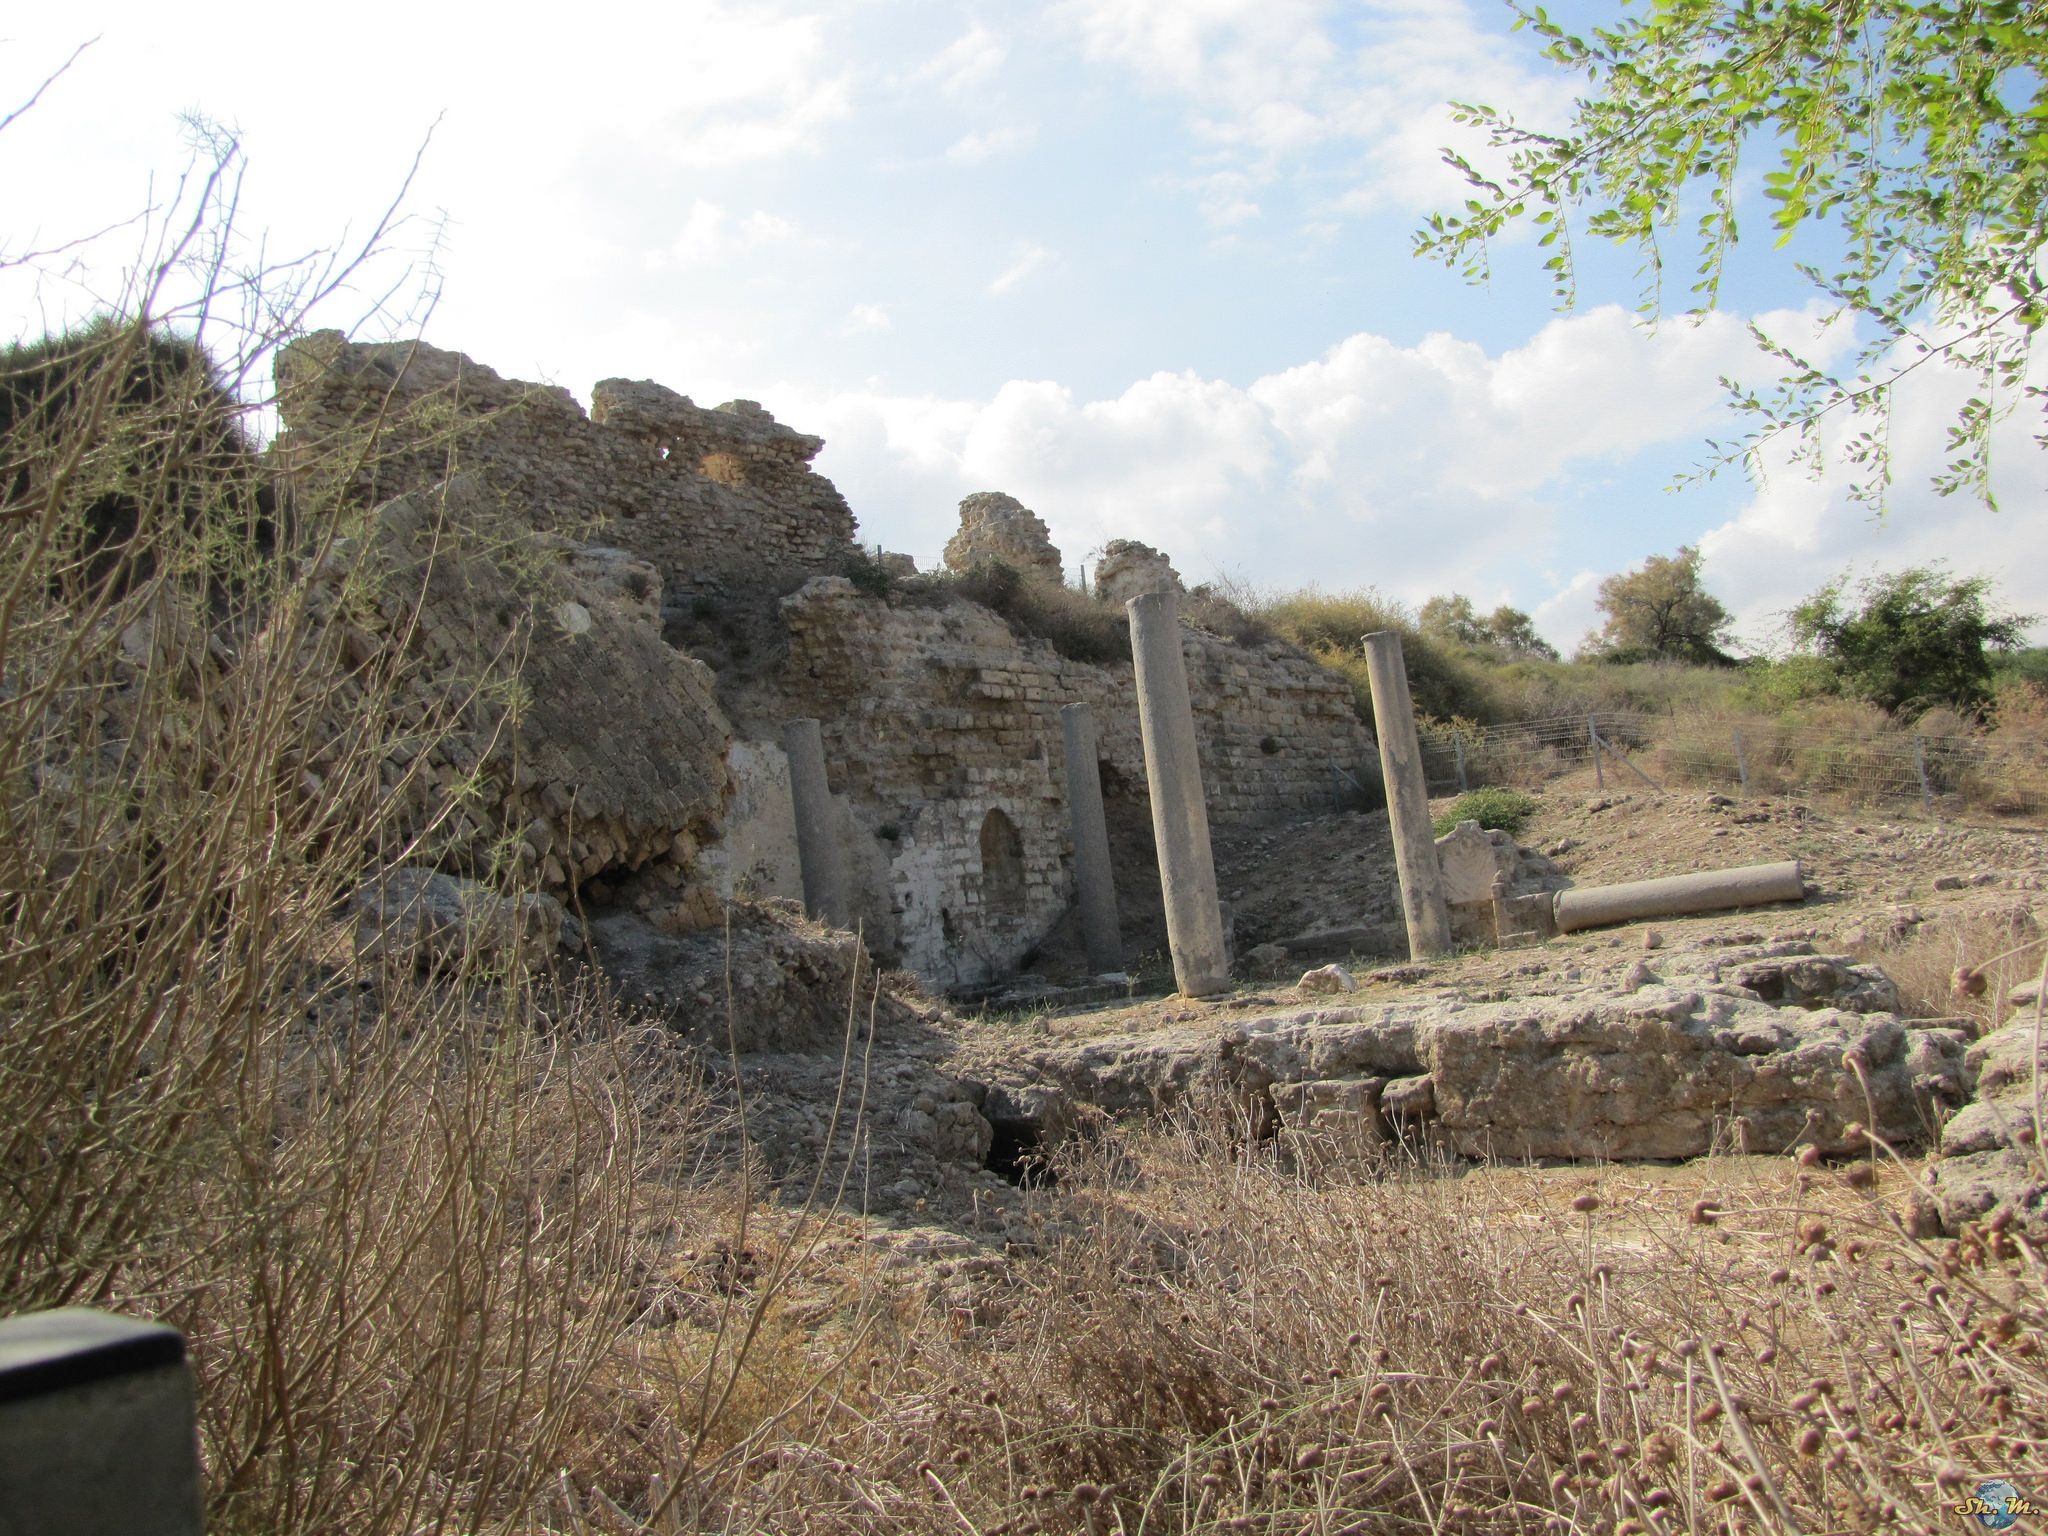 https://flic.kr/p/Q2GyHk   Ashkelon National Park   Ashkelon National Park is an Israeli national park along the shore of the Mediterranean sea southwest of the city of Ashkelon. The national park is situated in the heart of ancient Ashkelon. It is surrounded by a wall built in the mid-12th century by the Fatimid Caliphate. The wall was originally 2,200 meters in length, 50 meters in width and 15 meters in height. The remains of the wall are located in the eastern and southern parts of the…